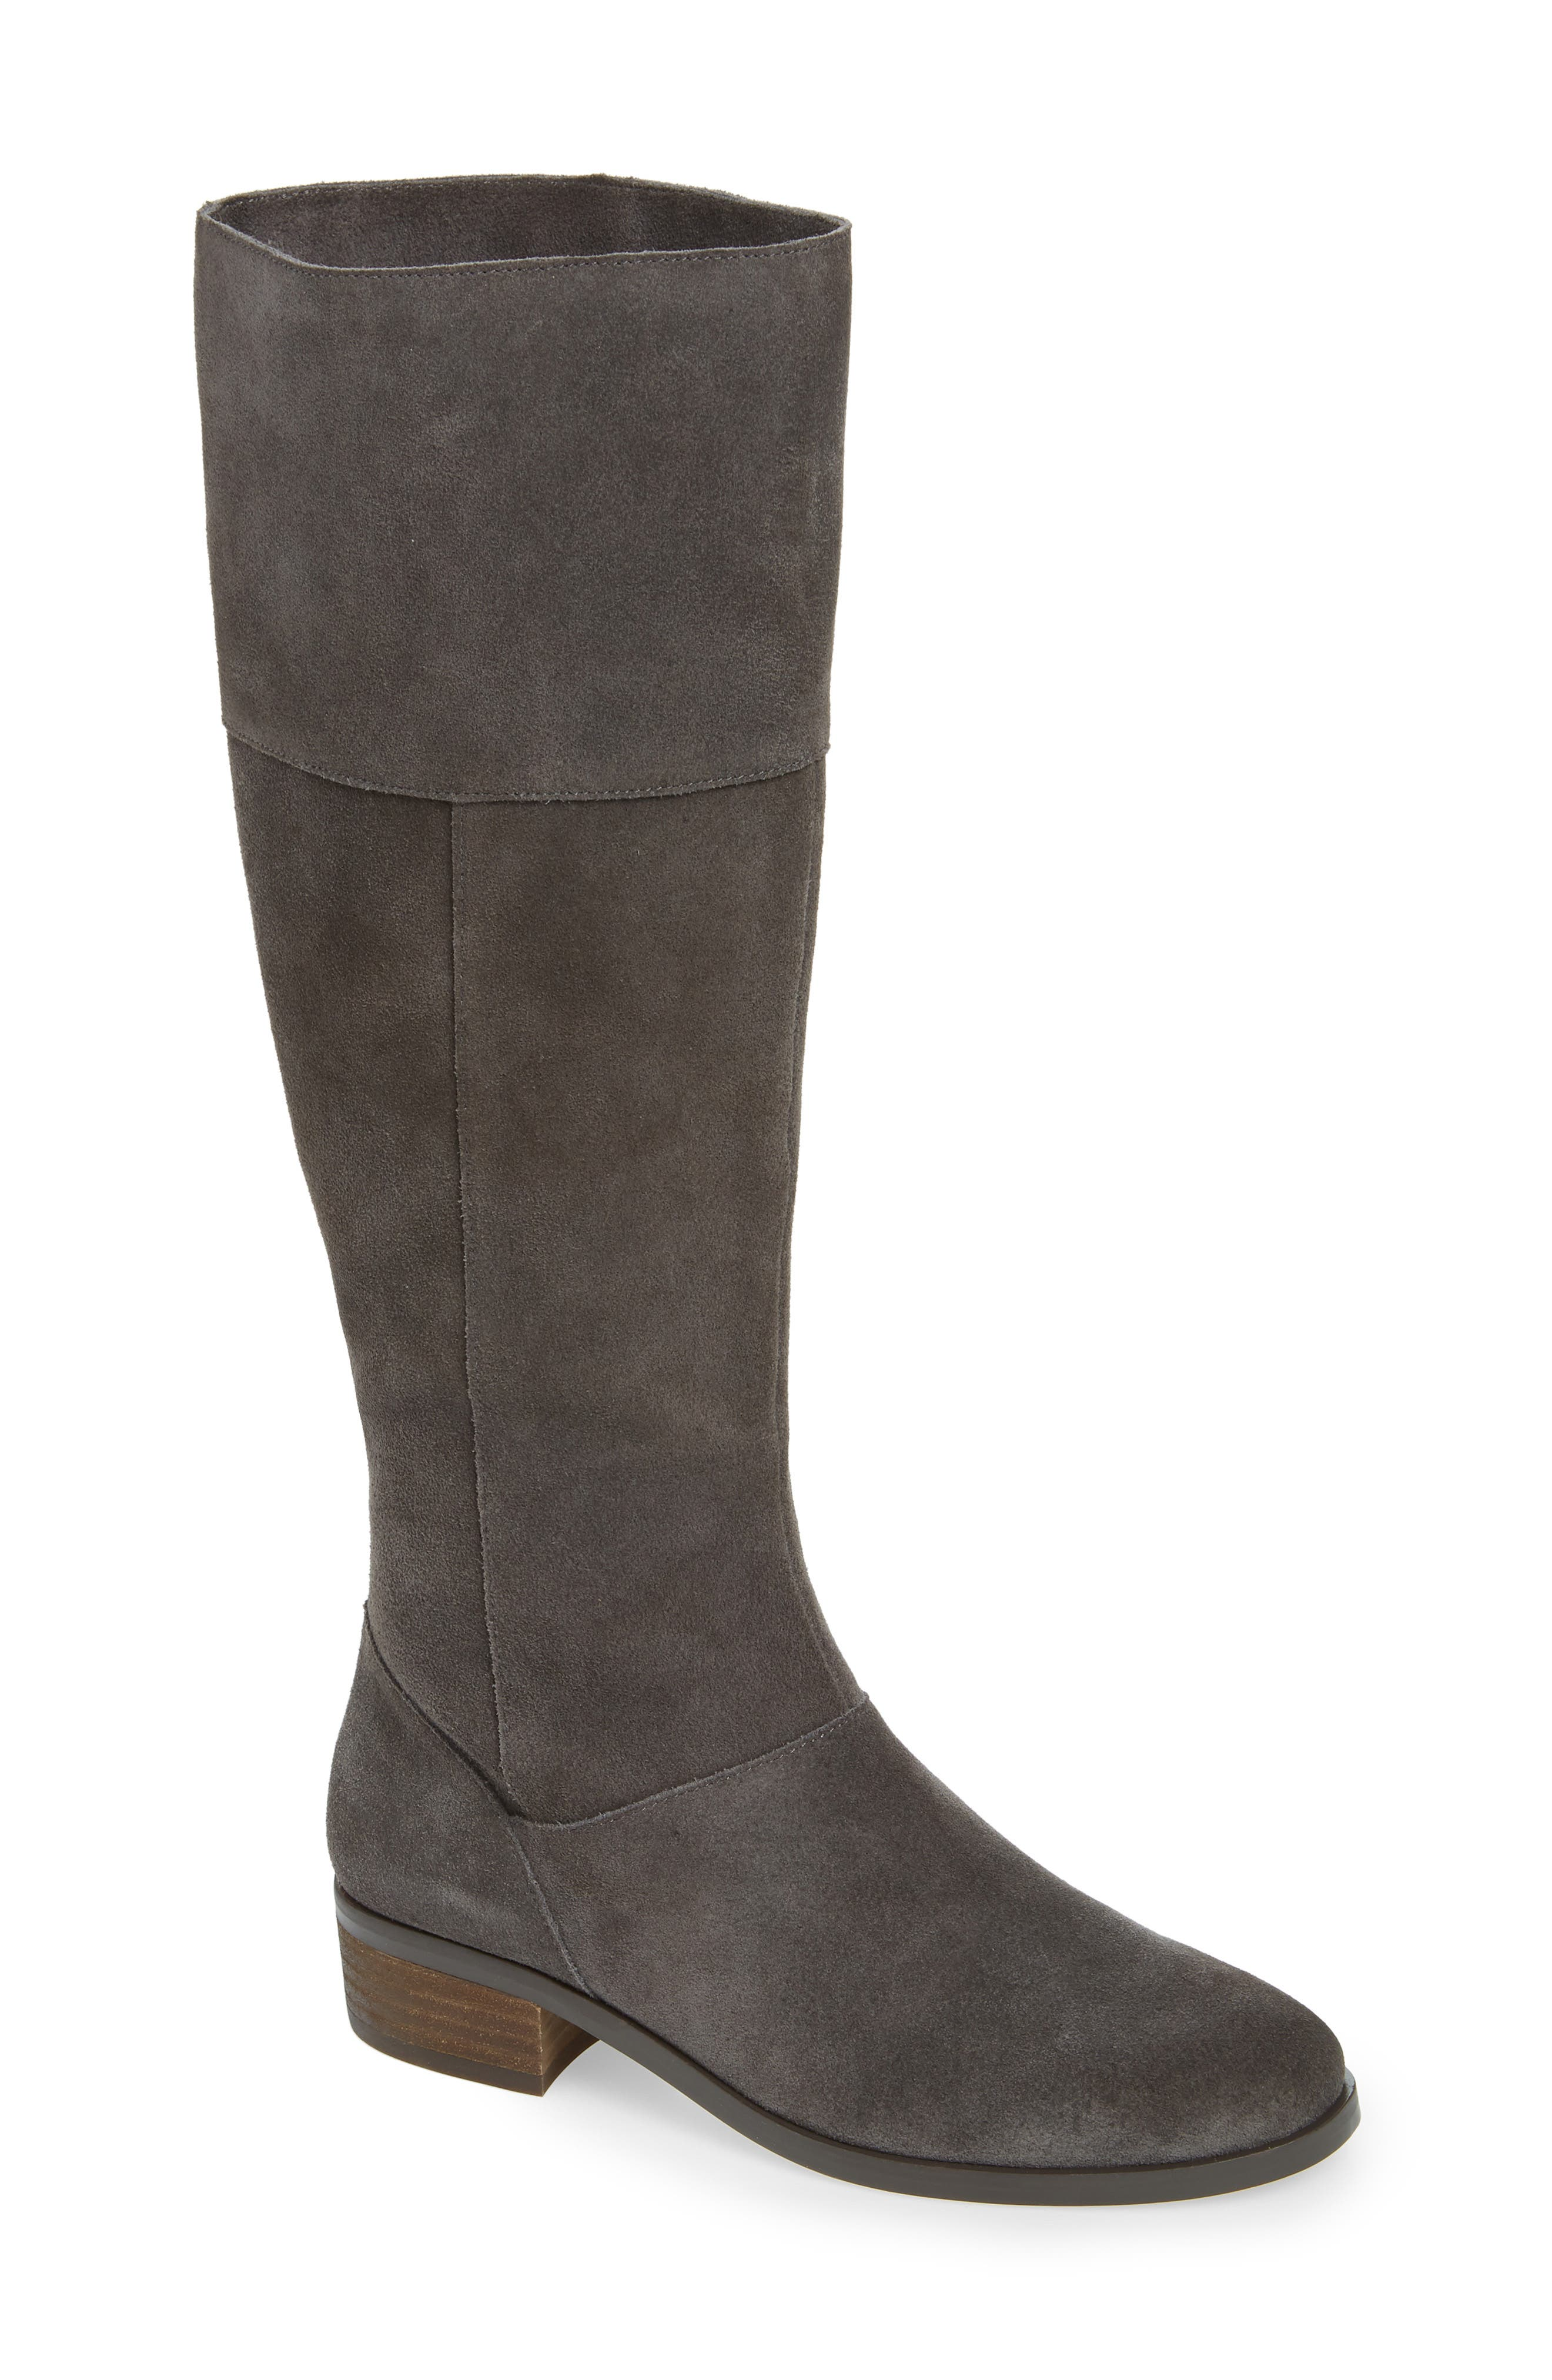 Carlie Knee High Boot,                             Main thumbnail 1, color,                             IRON SUEDE